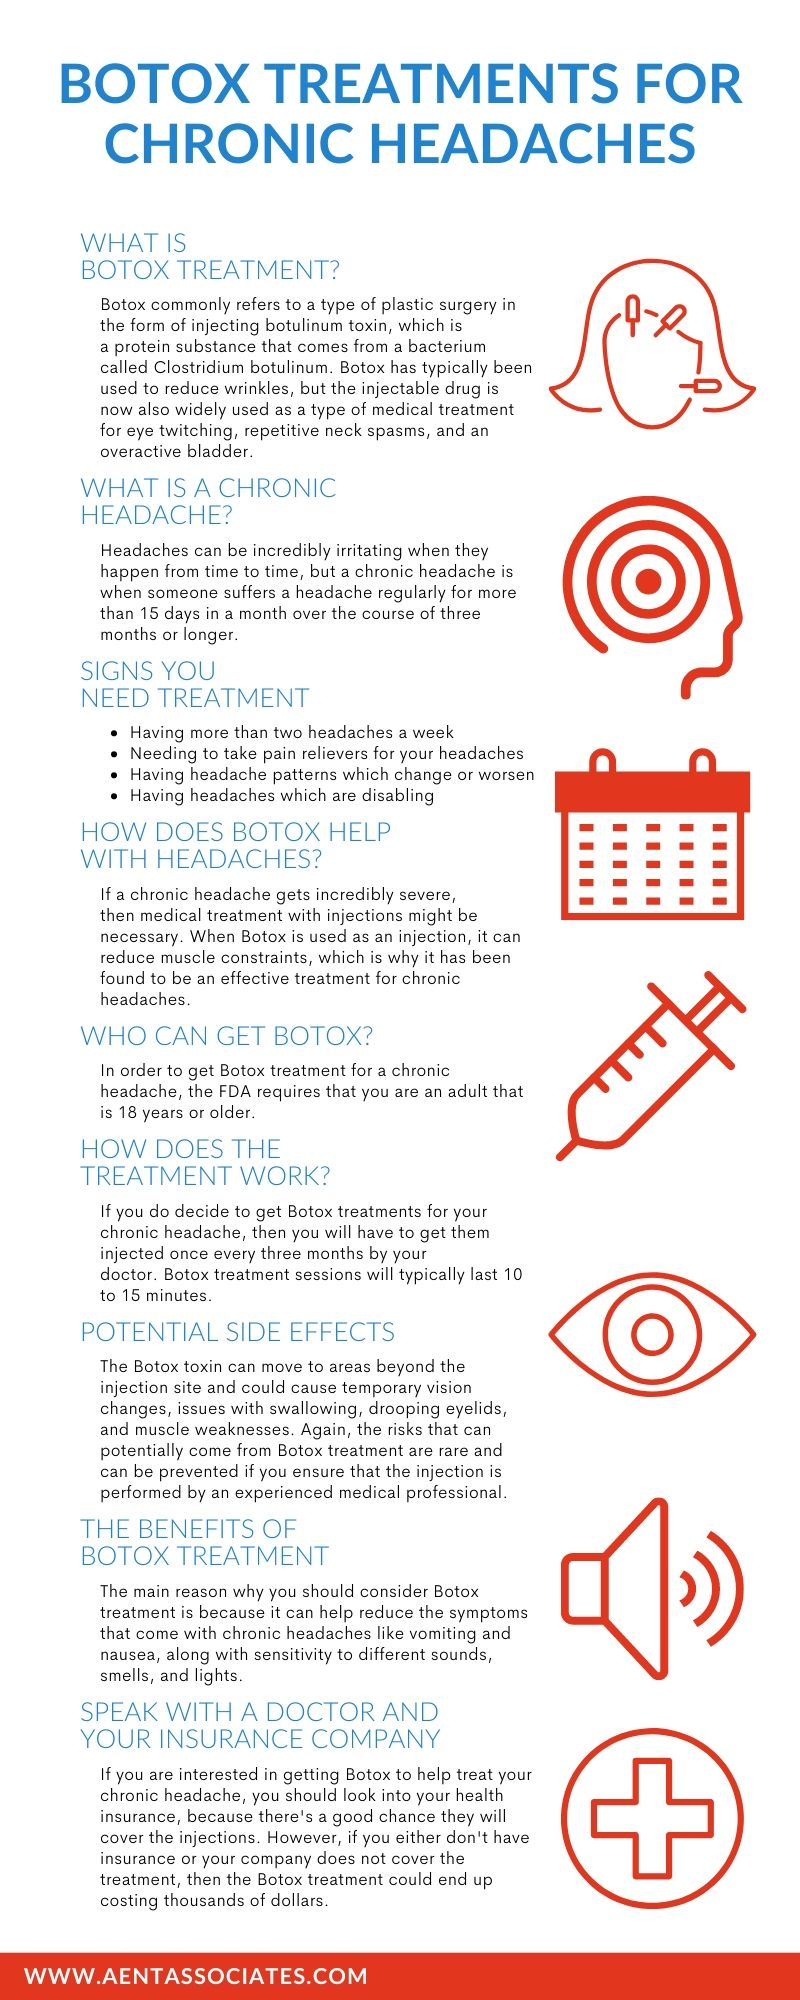 Infographic: Botox Treatments for Chronic Headaches